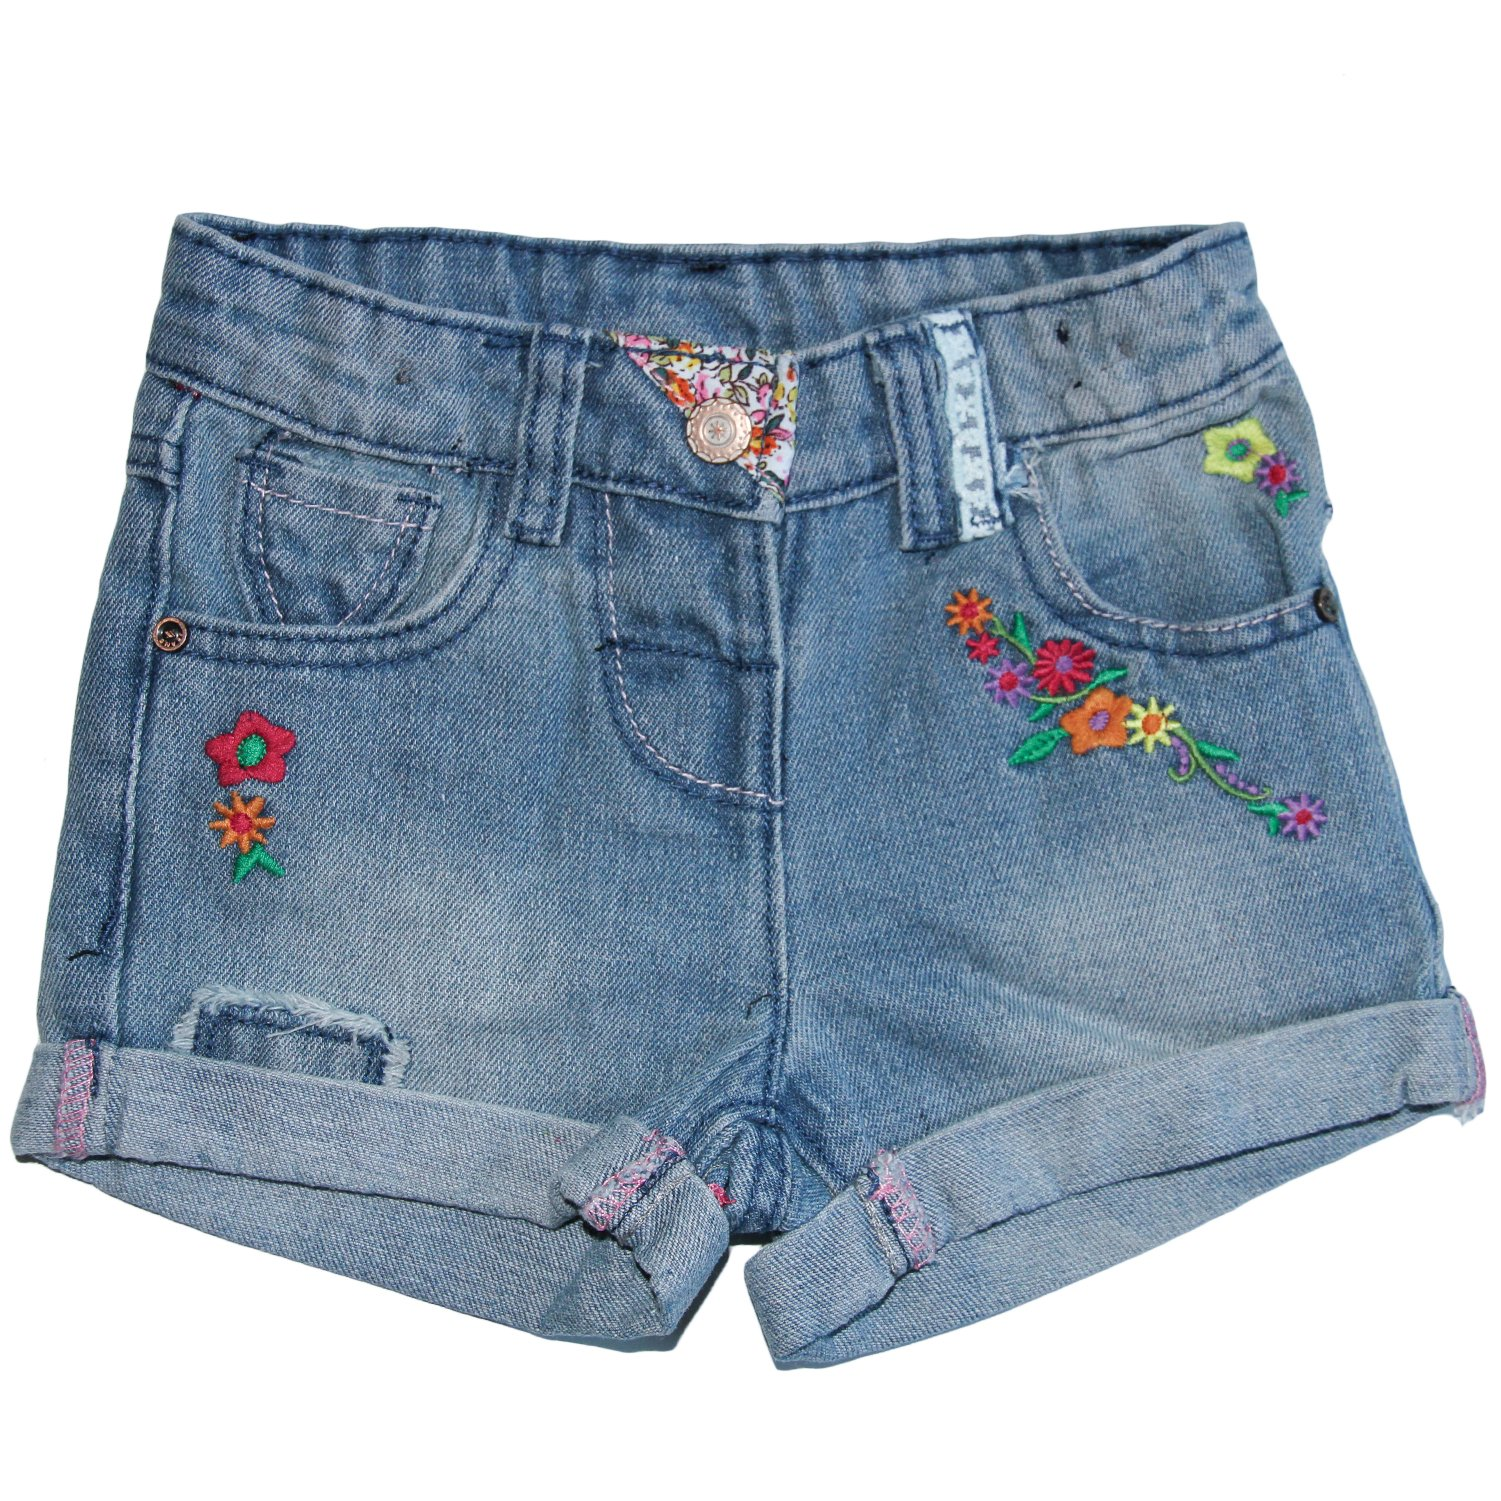 Aulase Little Girls Summer Cute Printed Basic Casual Stretch Denim Jean Shorts Flower 3T